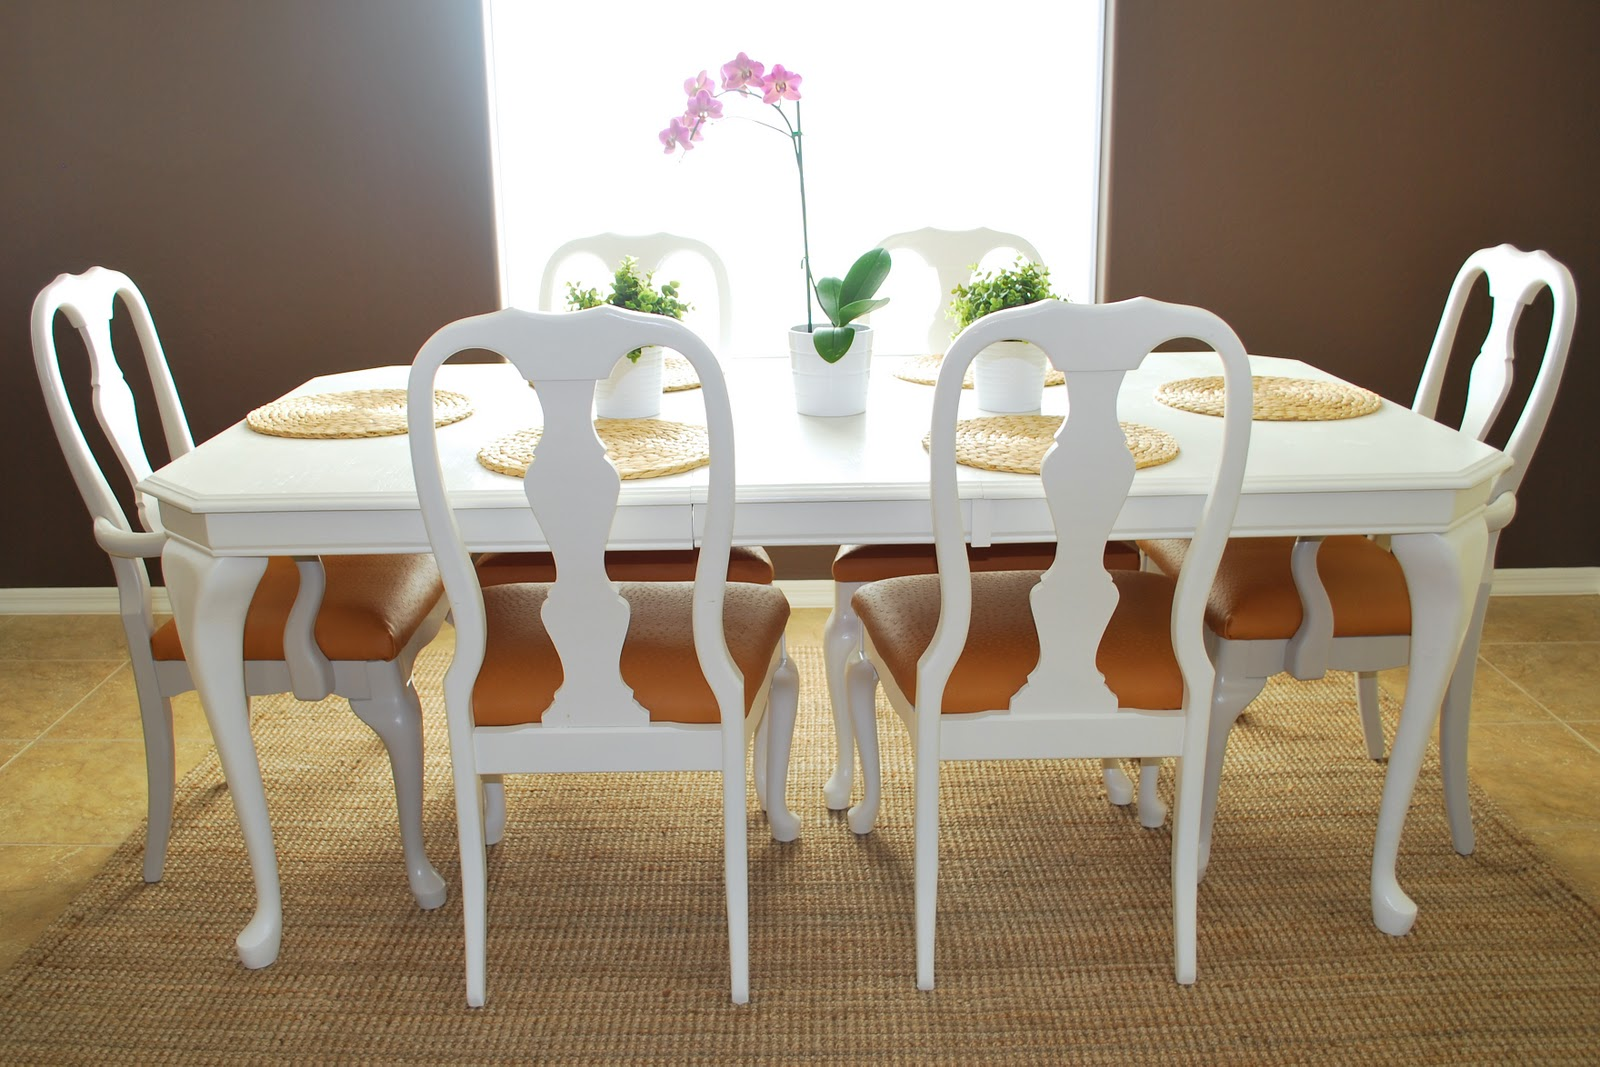 Refinished Dining Room Table And Chair Re Upholstery Tutorial (3)